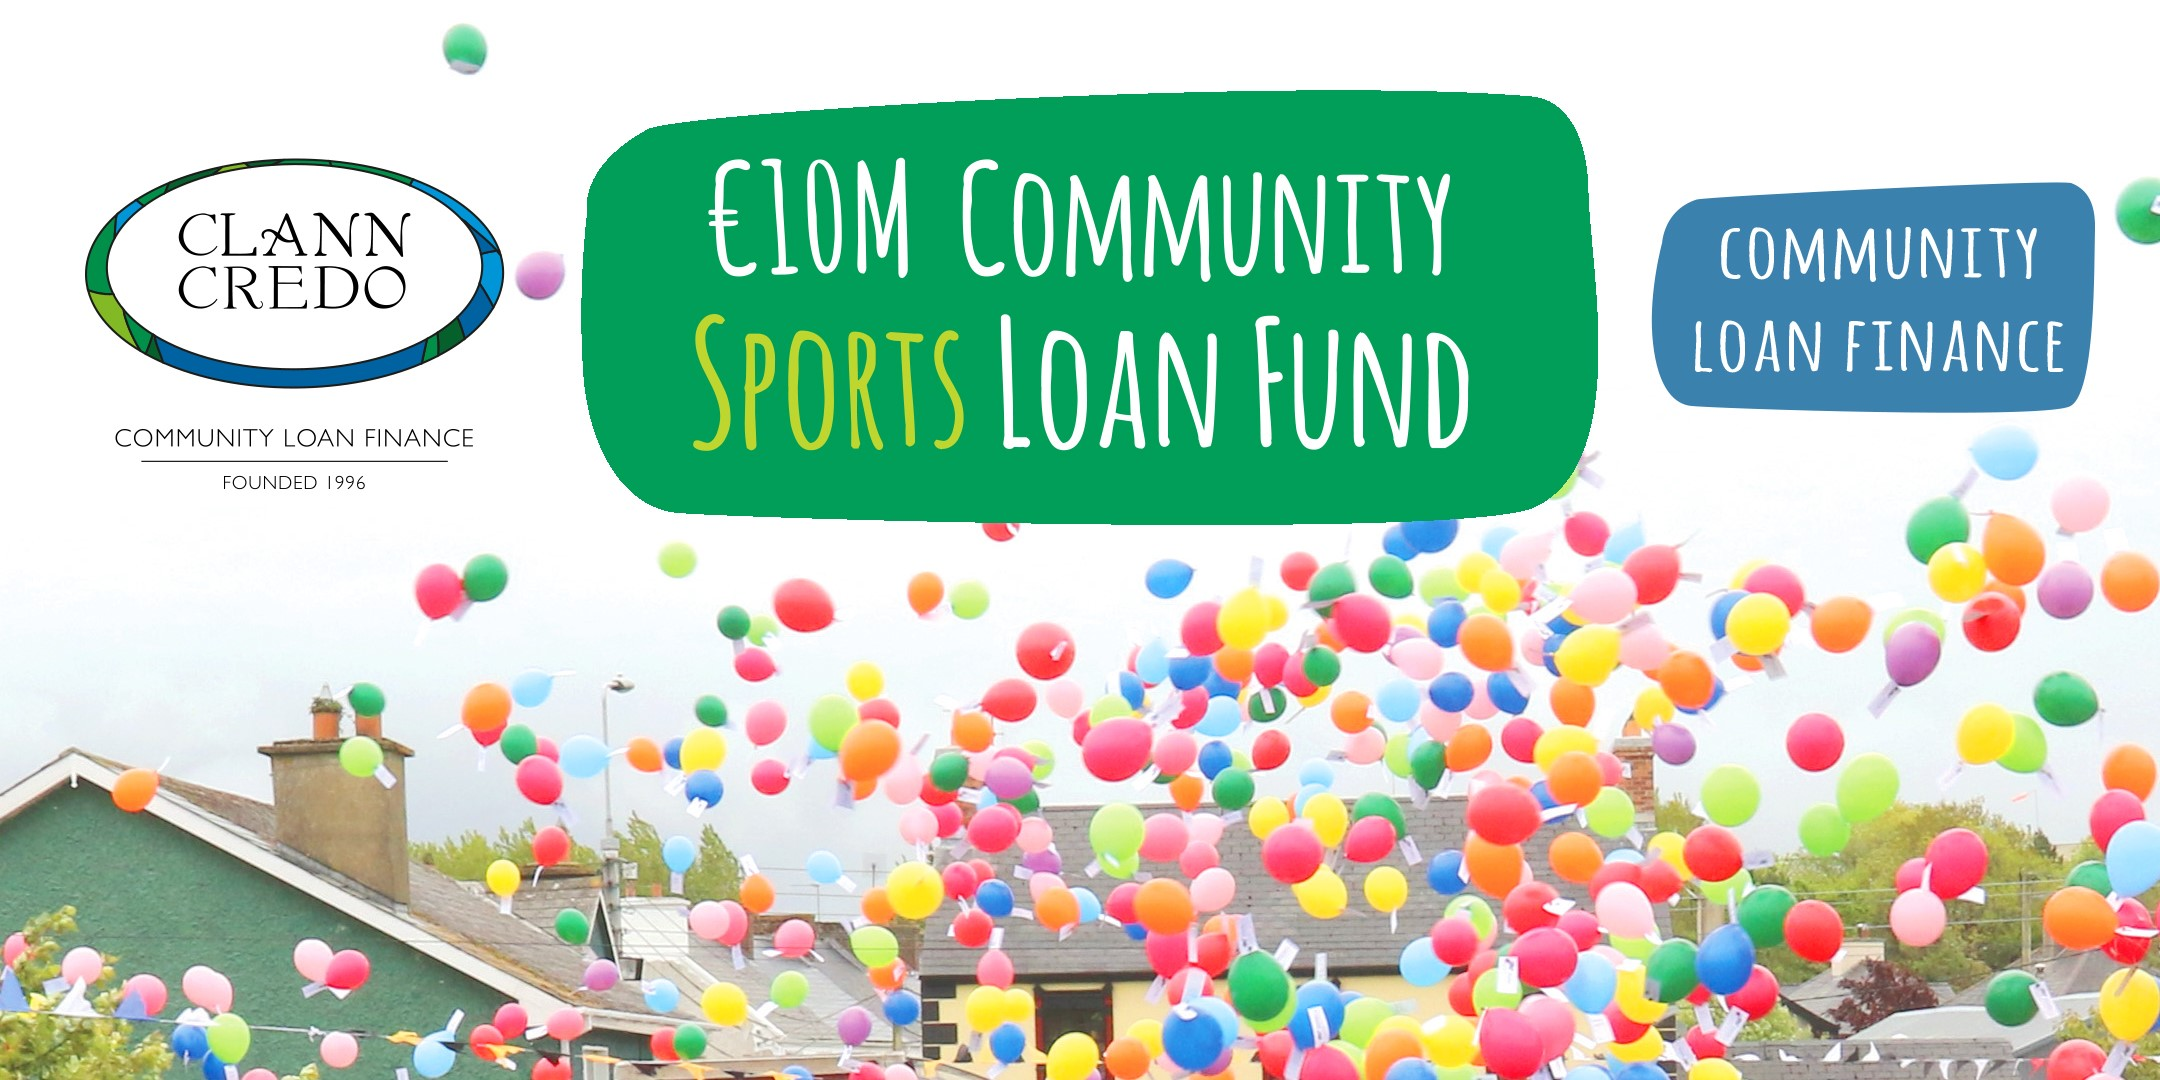 €10m Community Sports Loan Fund Launch and Seminar